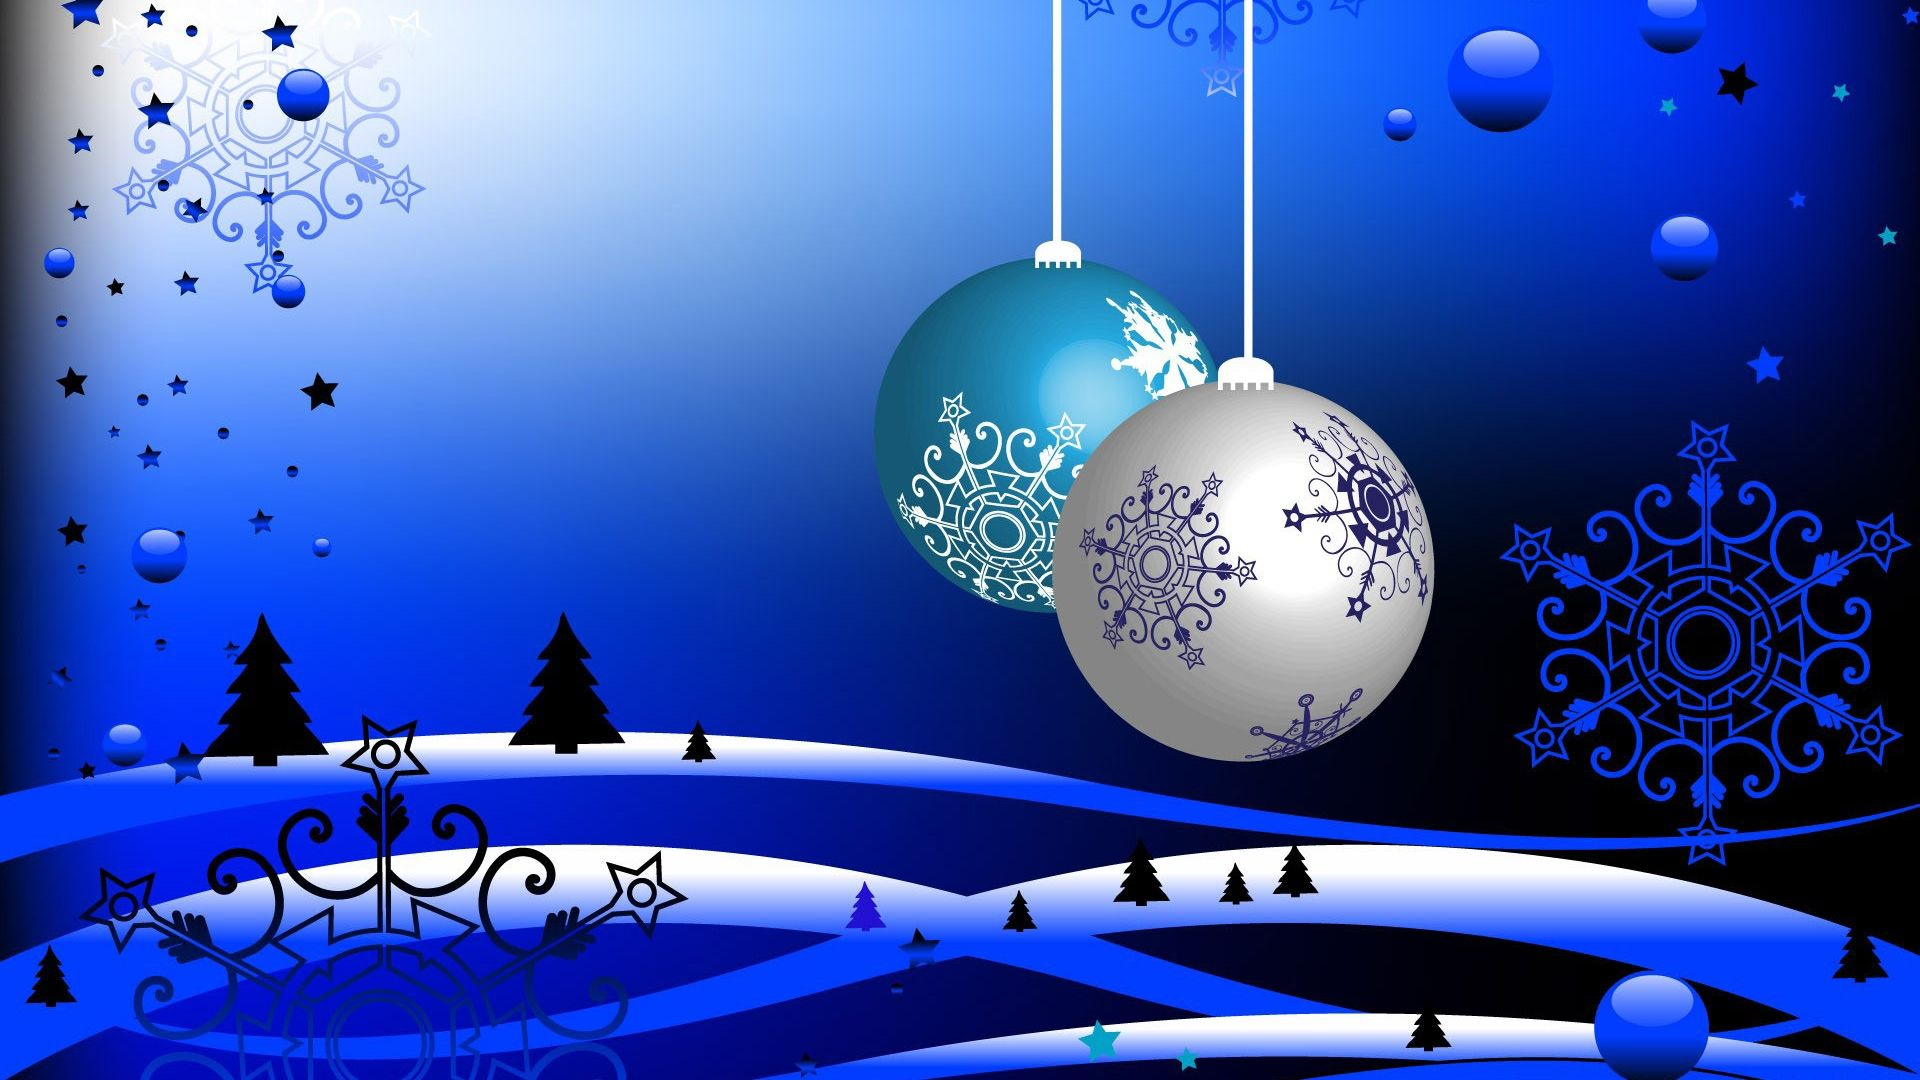 40 free animated christmas wallpaper for desktop - Animated Christmas Wallpaper